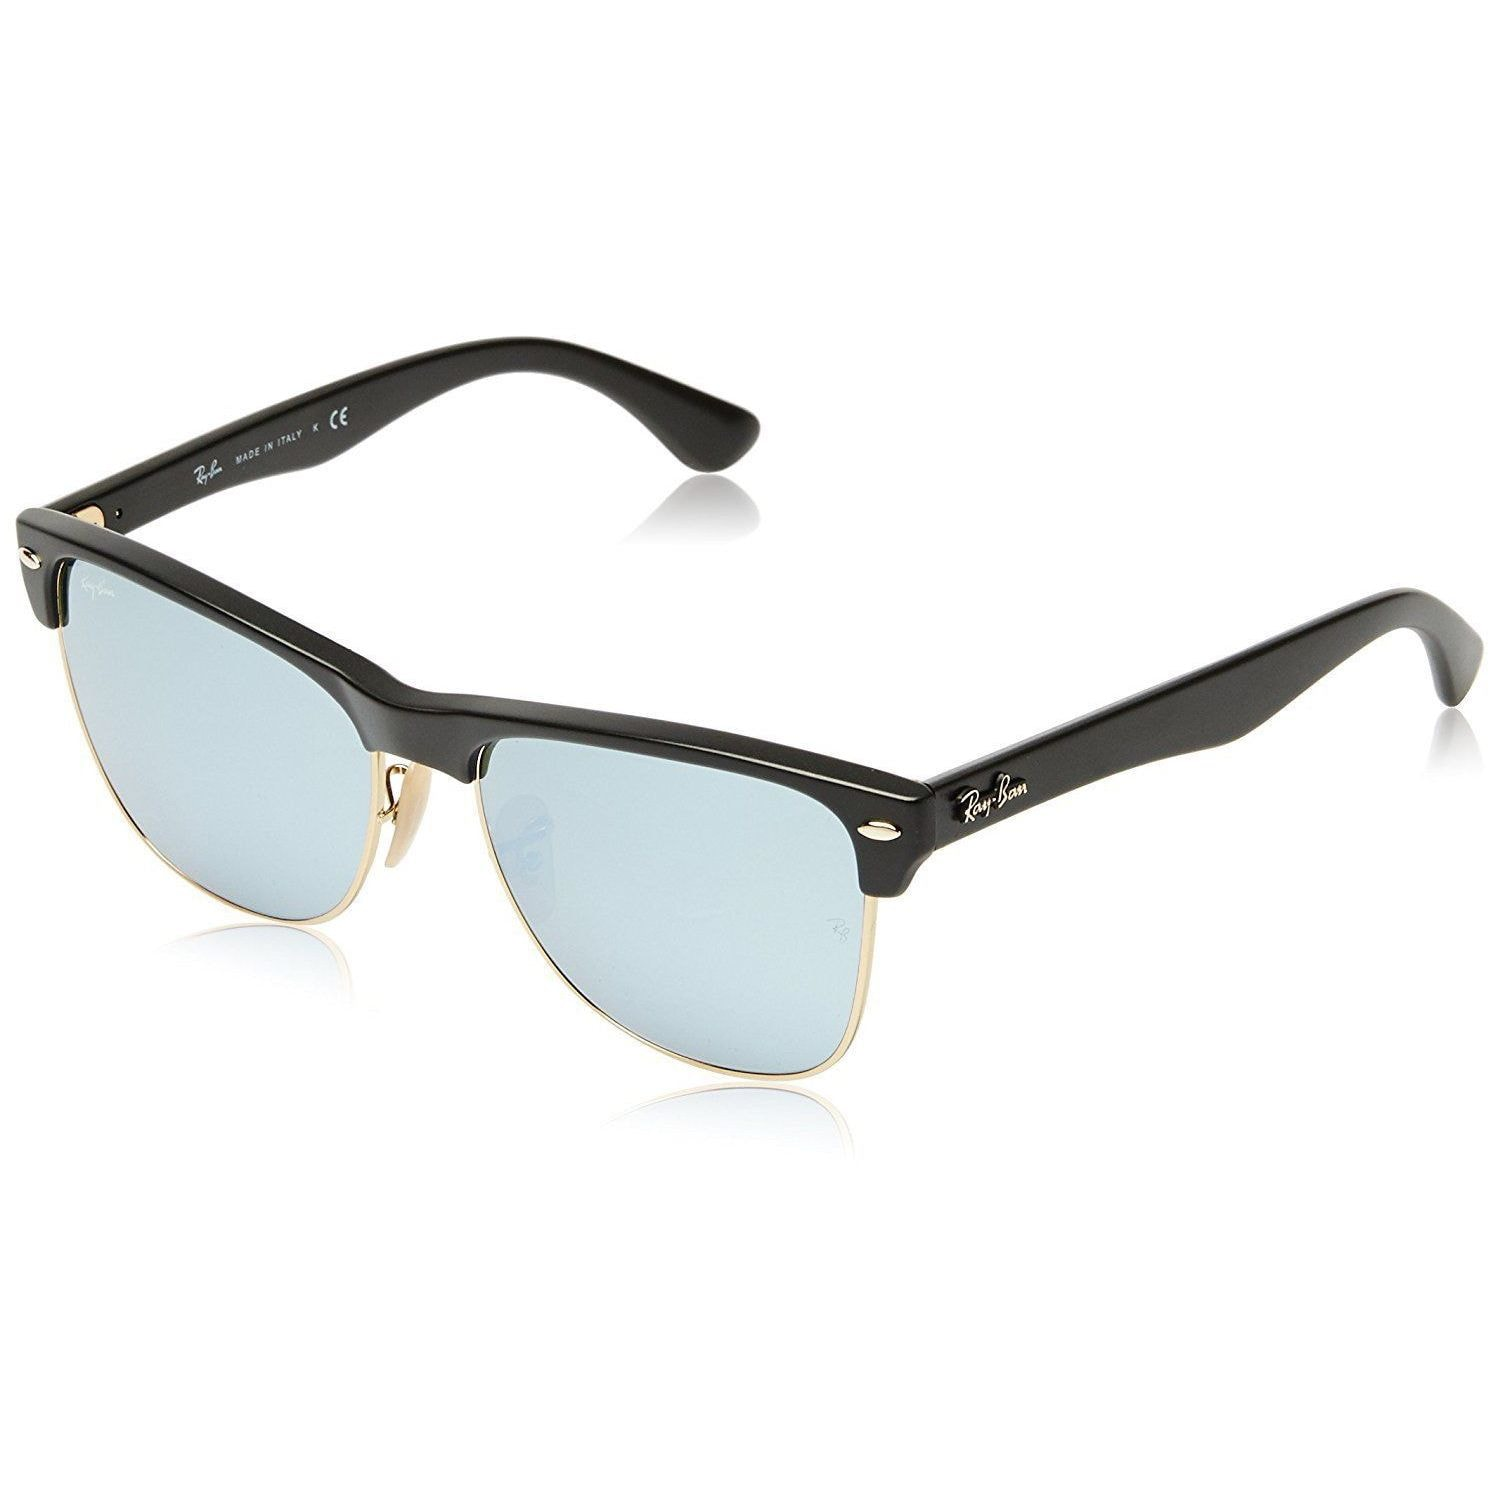 32680839305b4 Ray-Ban Clubmaster Oversized RB4175 877 30 Unisex Black Frame Silver Flash  57mm Lens Sunglasses